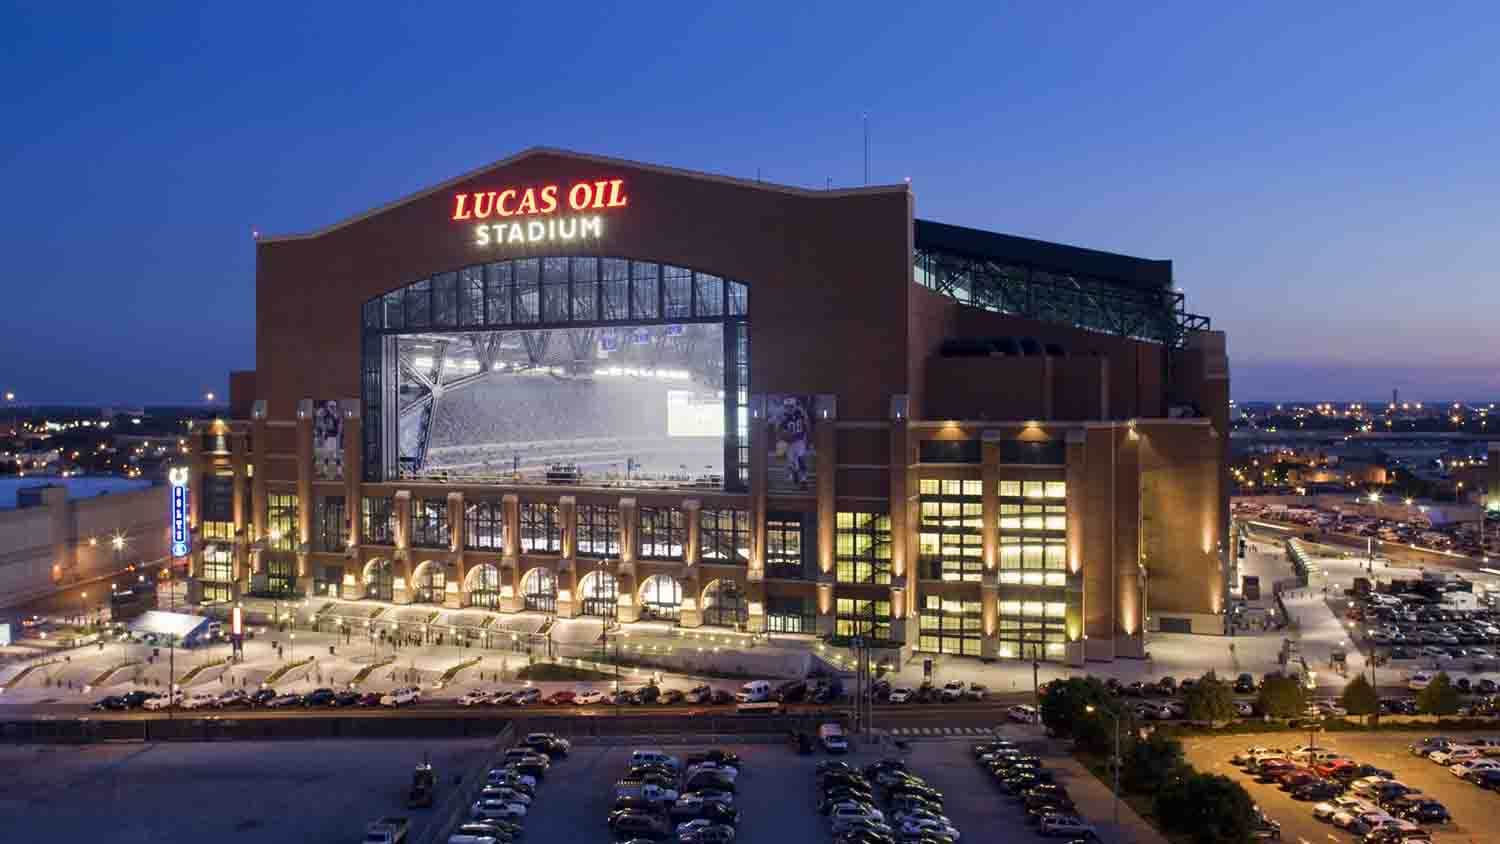 Lucas oil stadium 1